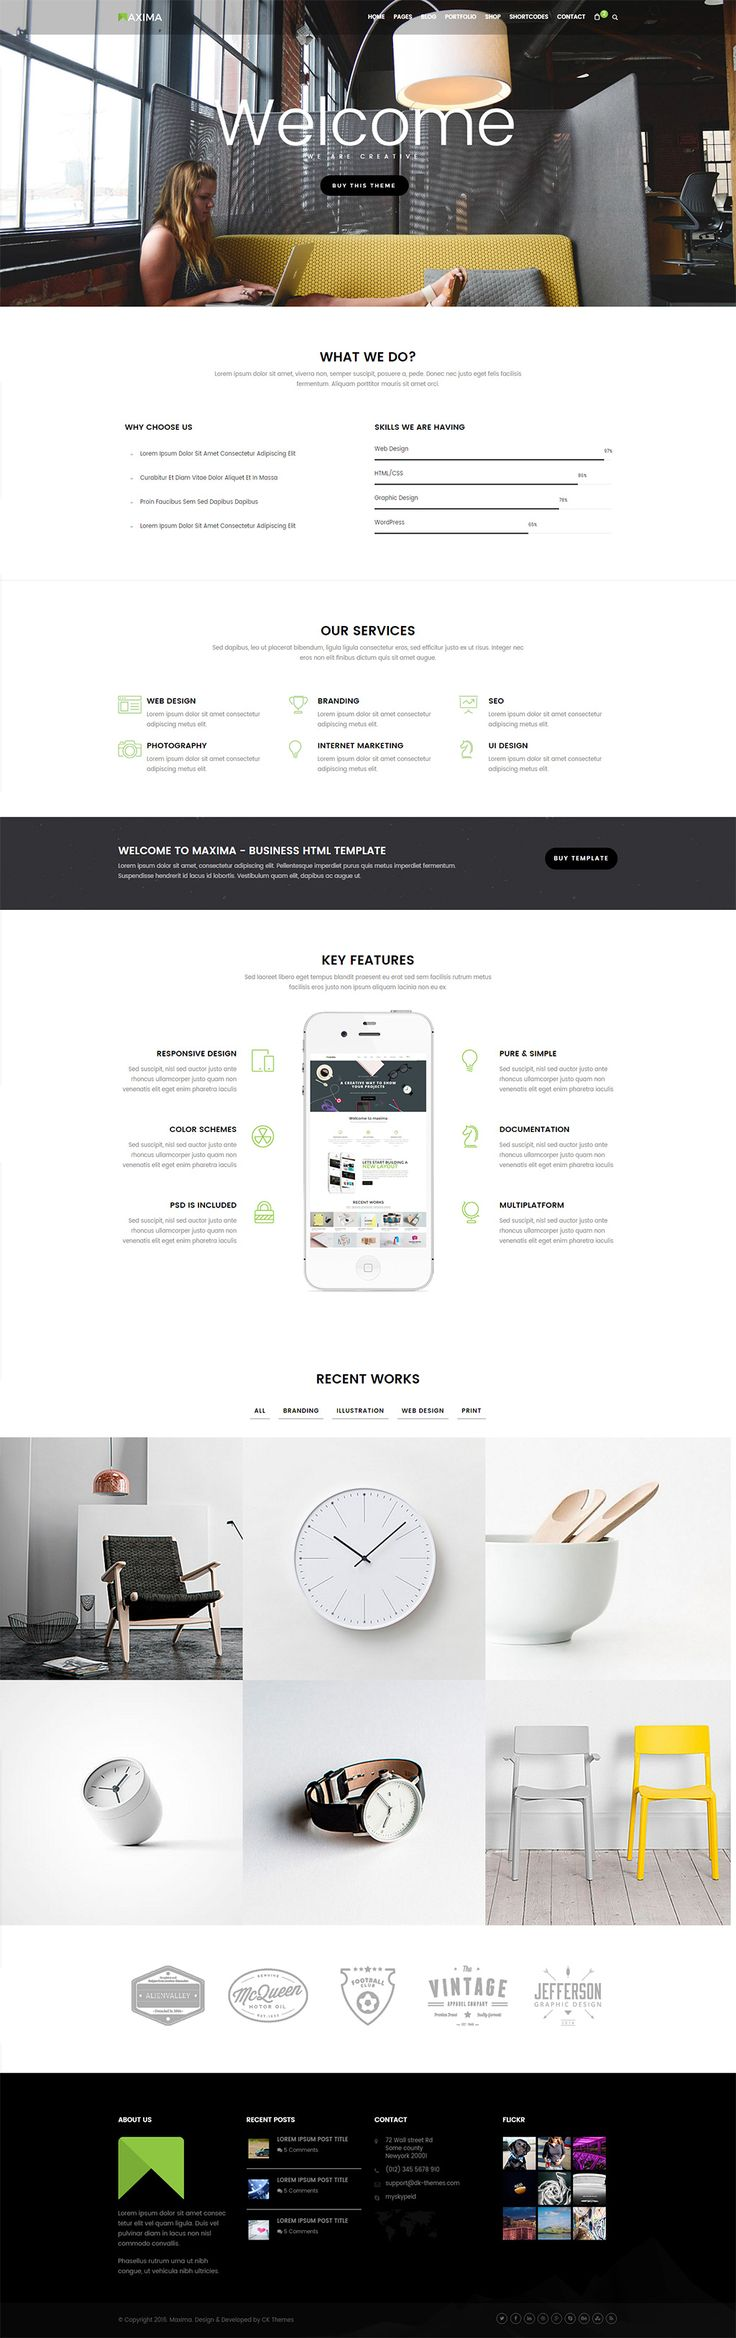 Best 100+ Site Templates images on Pinterest | Design web, Design ...